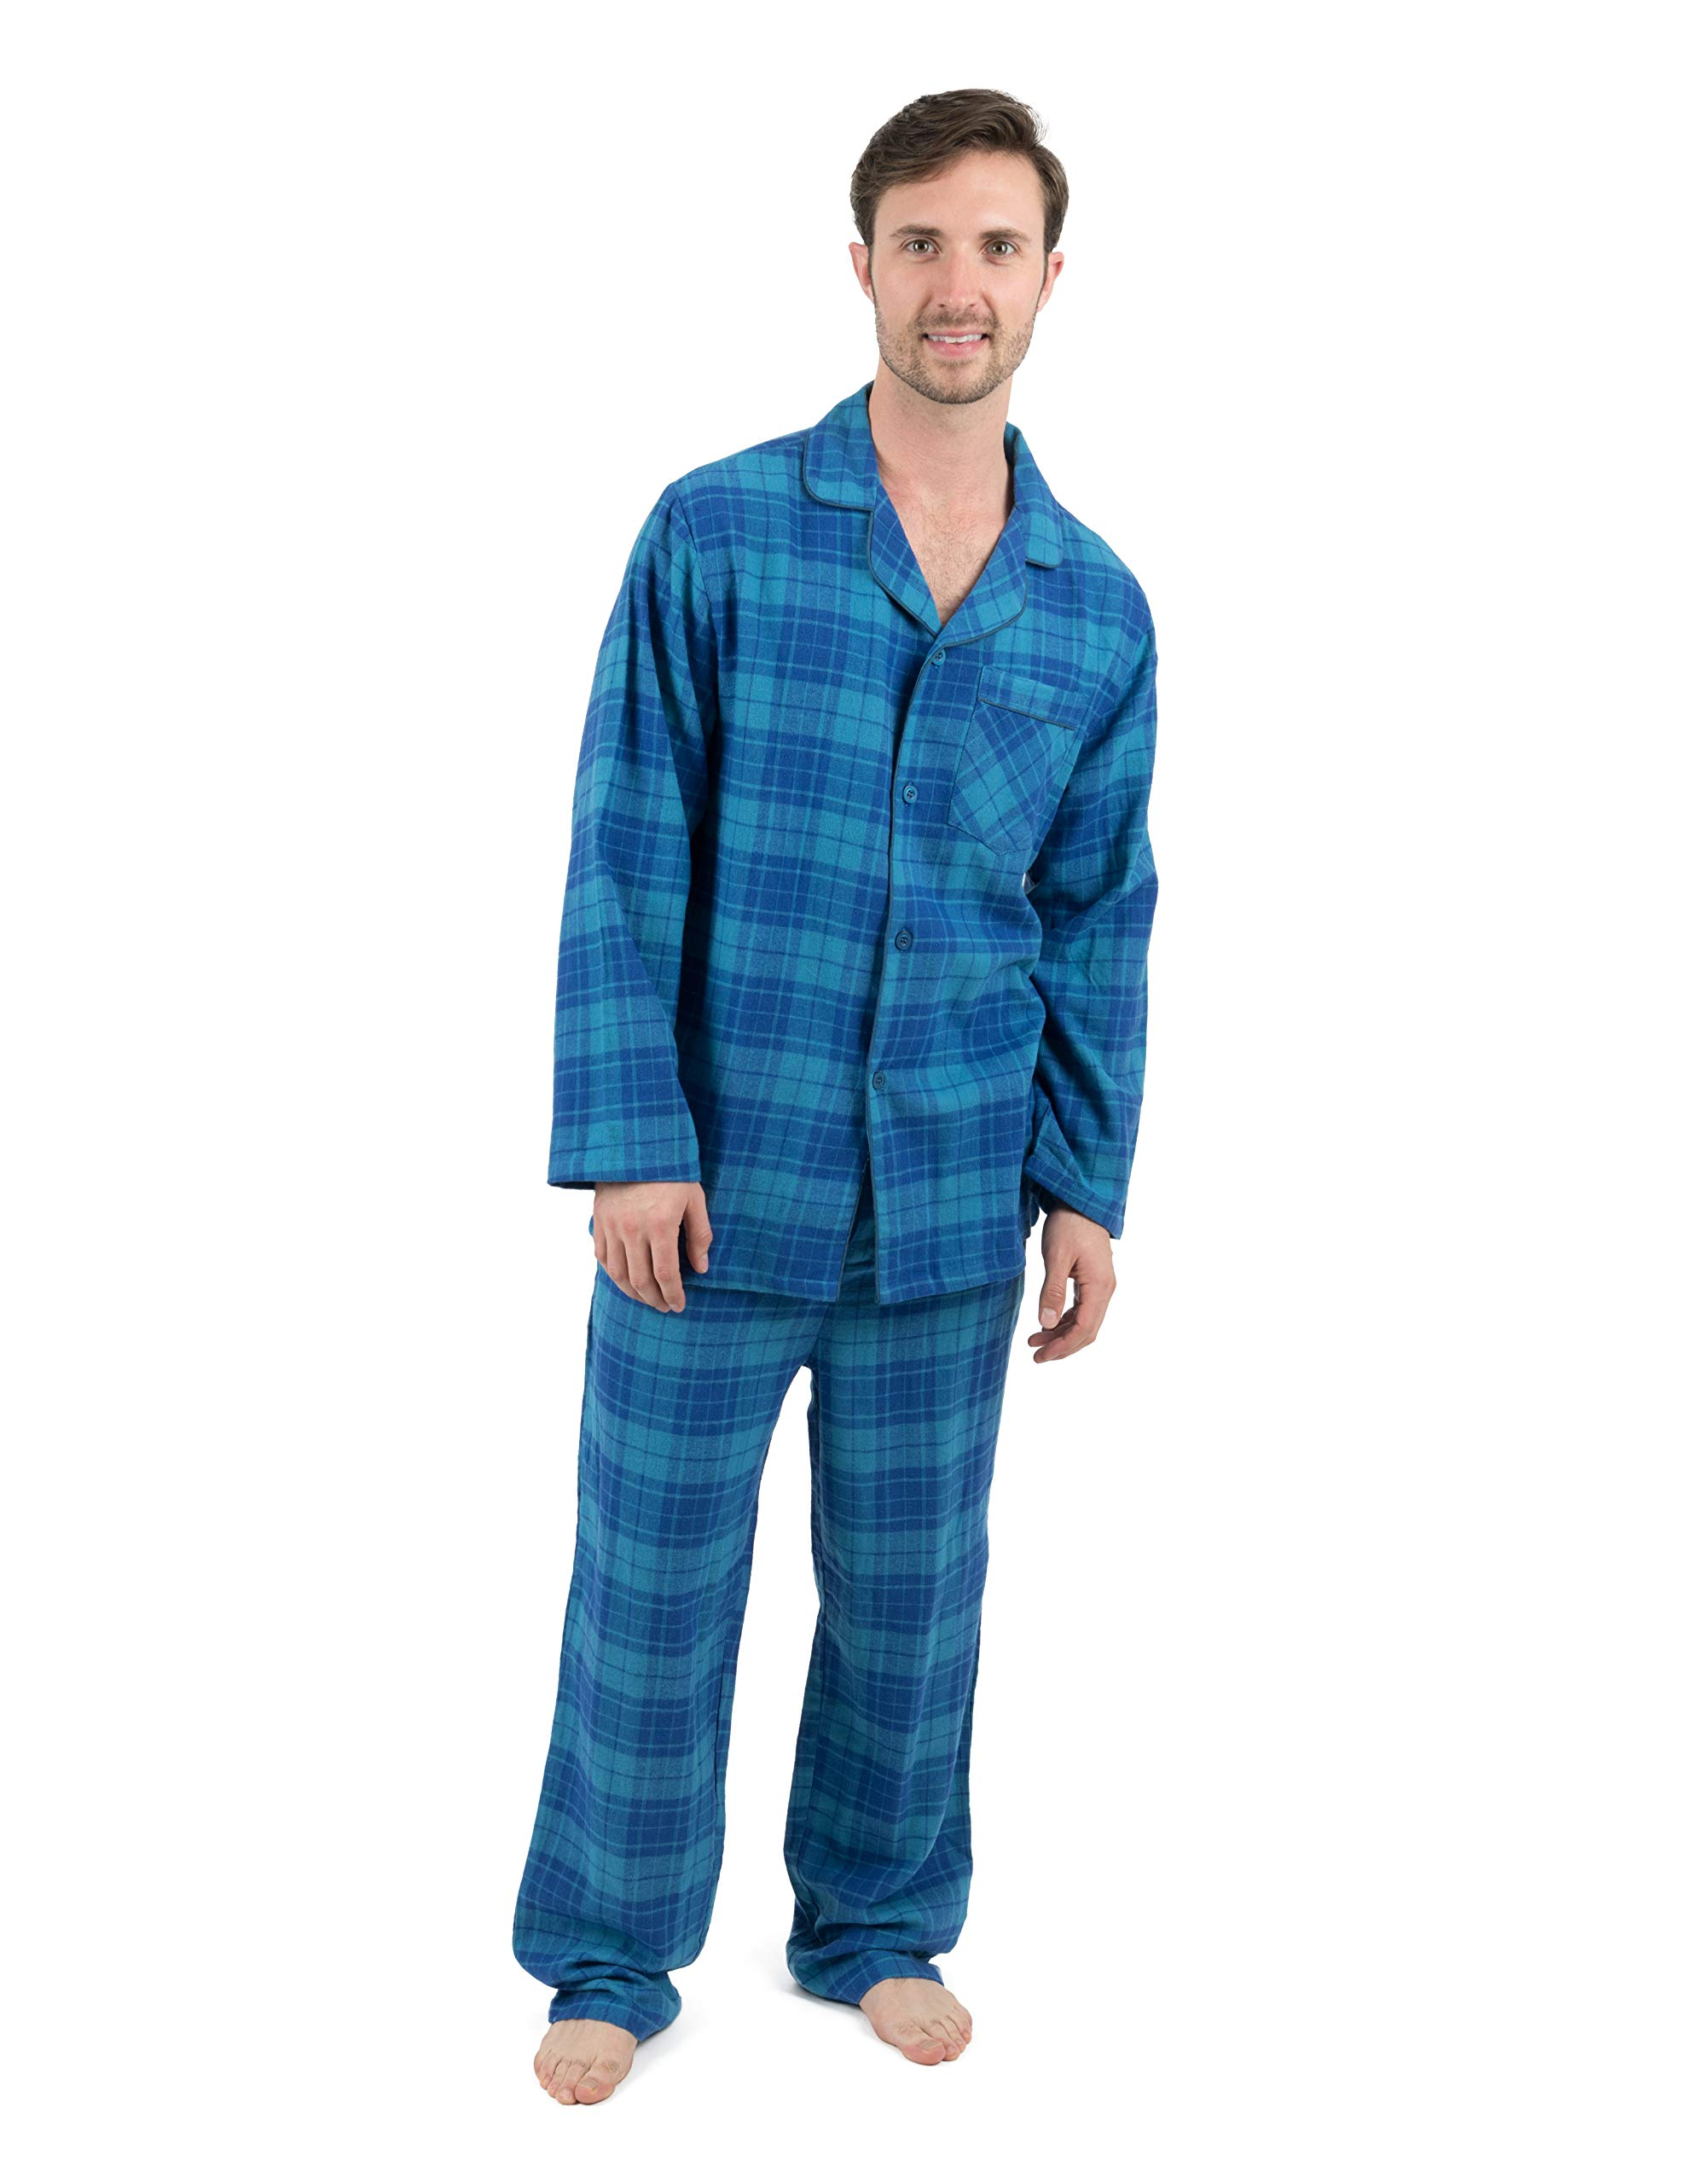 Mens Christmas Pajamas.Details About Leveret Mens Flannel Pajamas 2 Piece Christmas Pajama Set Size Small Xxx Large